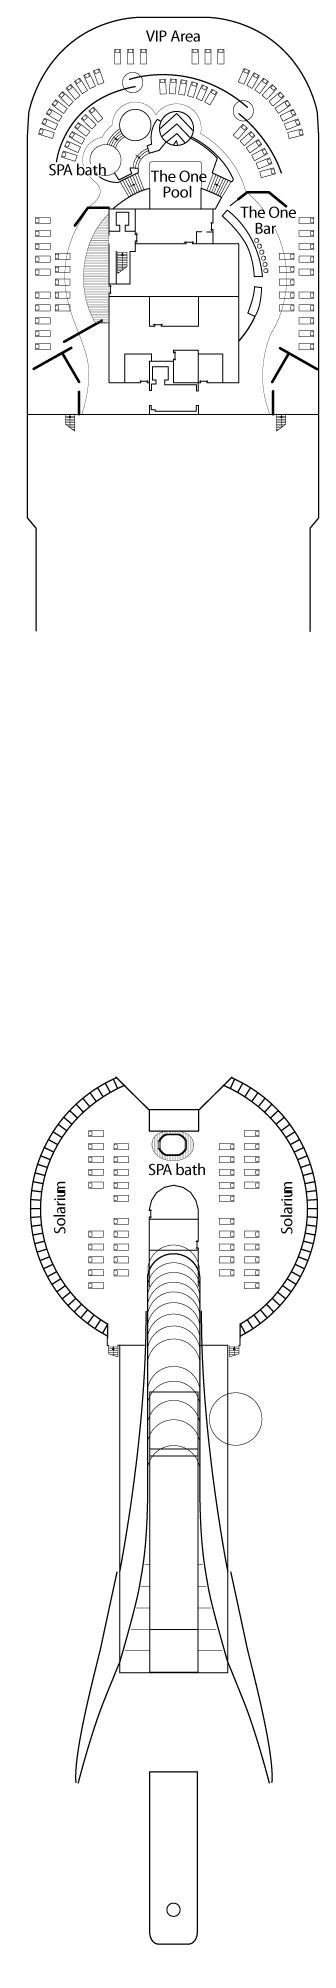 MSC Splendida Deck 18 - Sun Deck layout